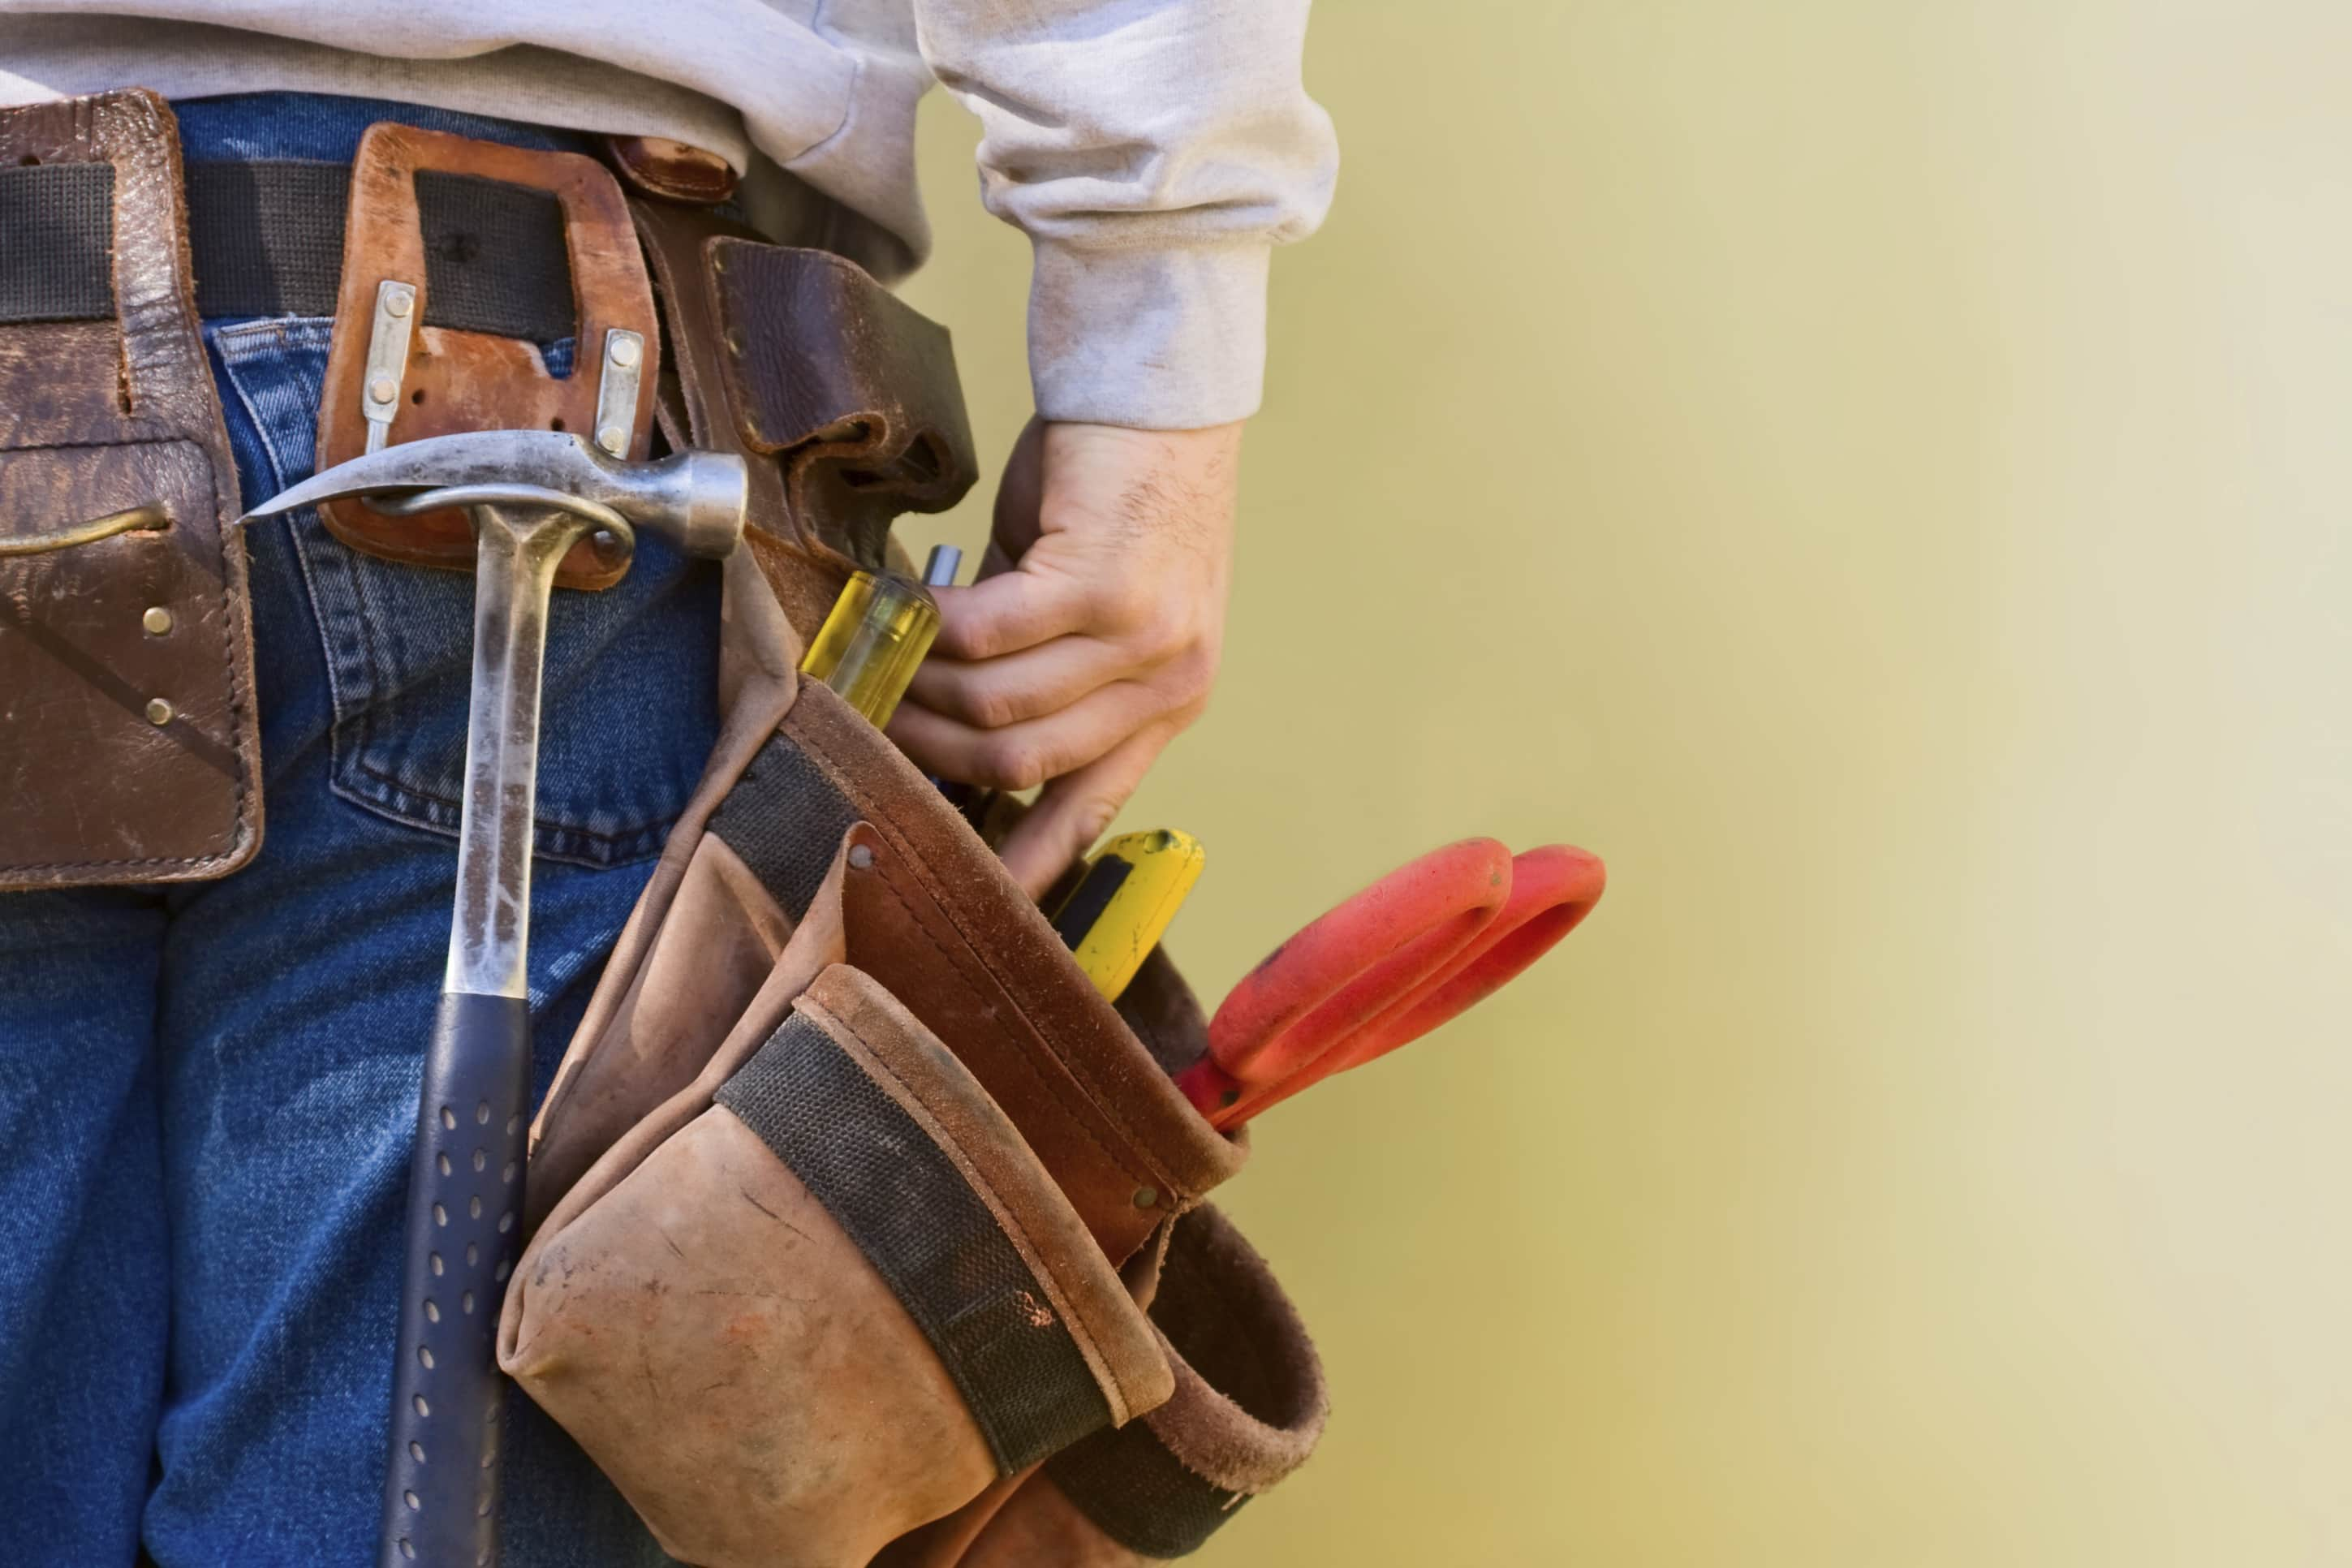 Looking for Home Repair Contractors near Me